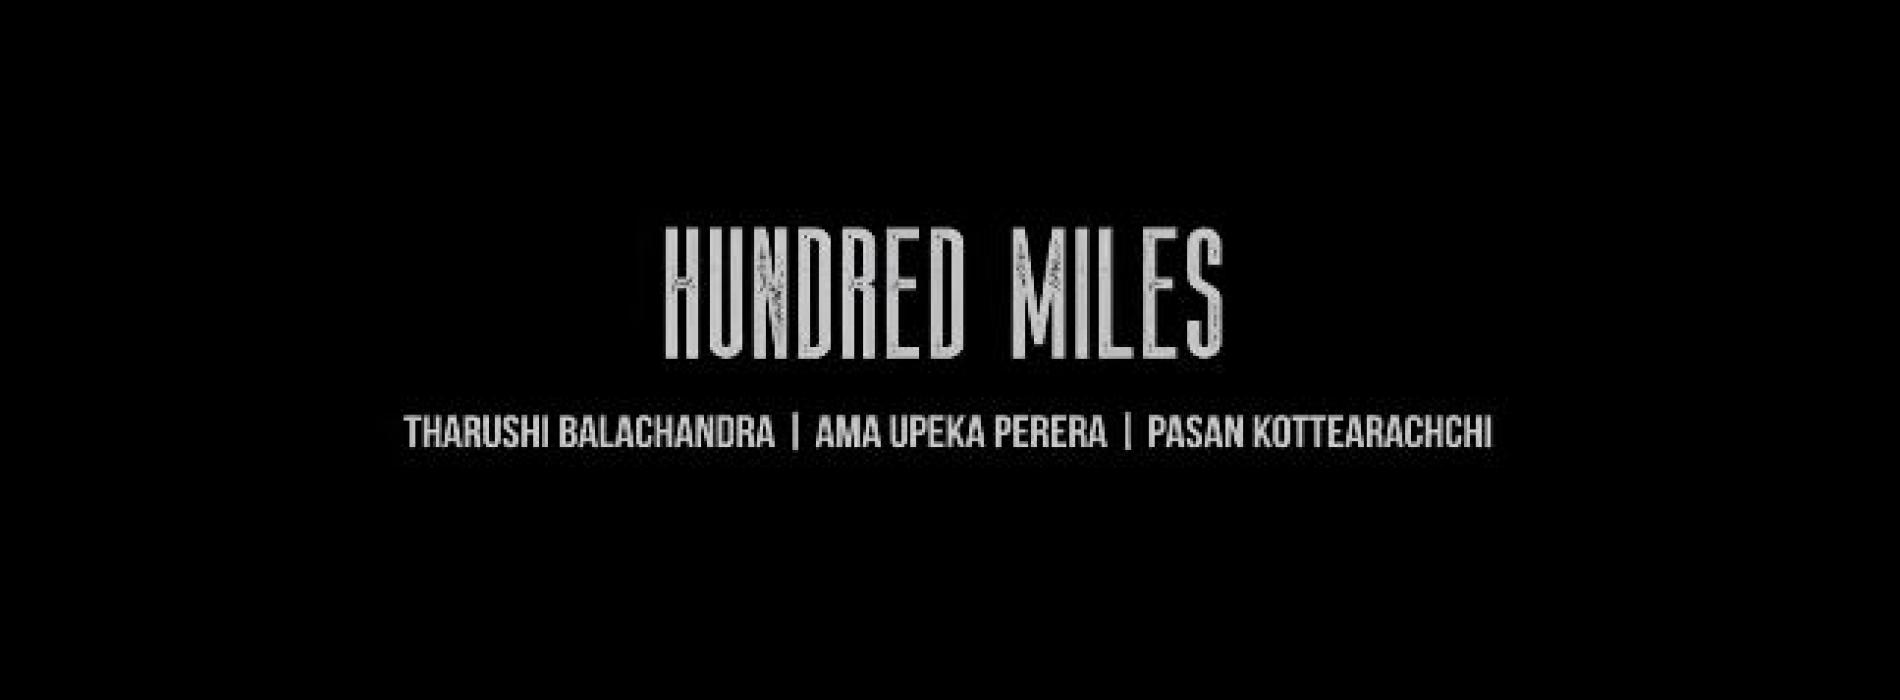 New Music : Hundred Miles – Tharushi Balachandra | Ama Upeka Perera | Pasan Kottearachchi (Animated Lyric Video)